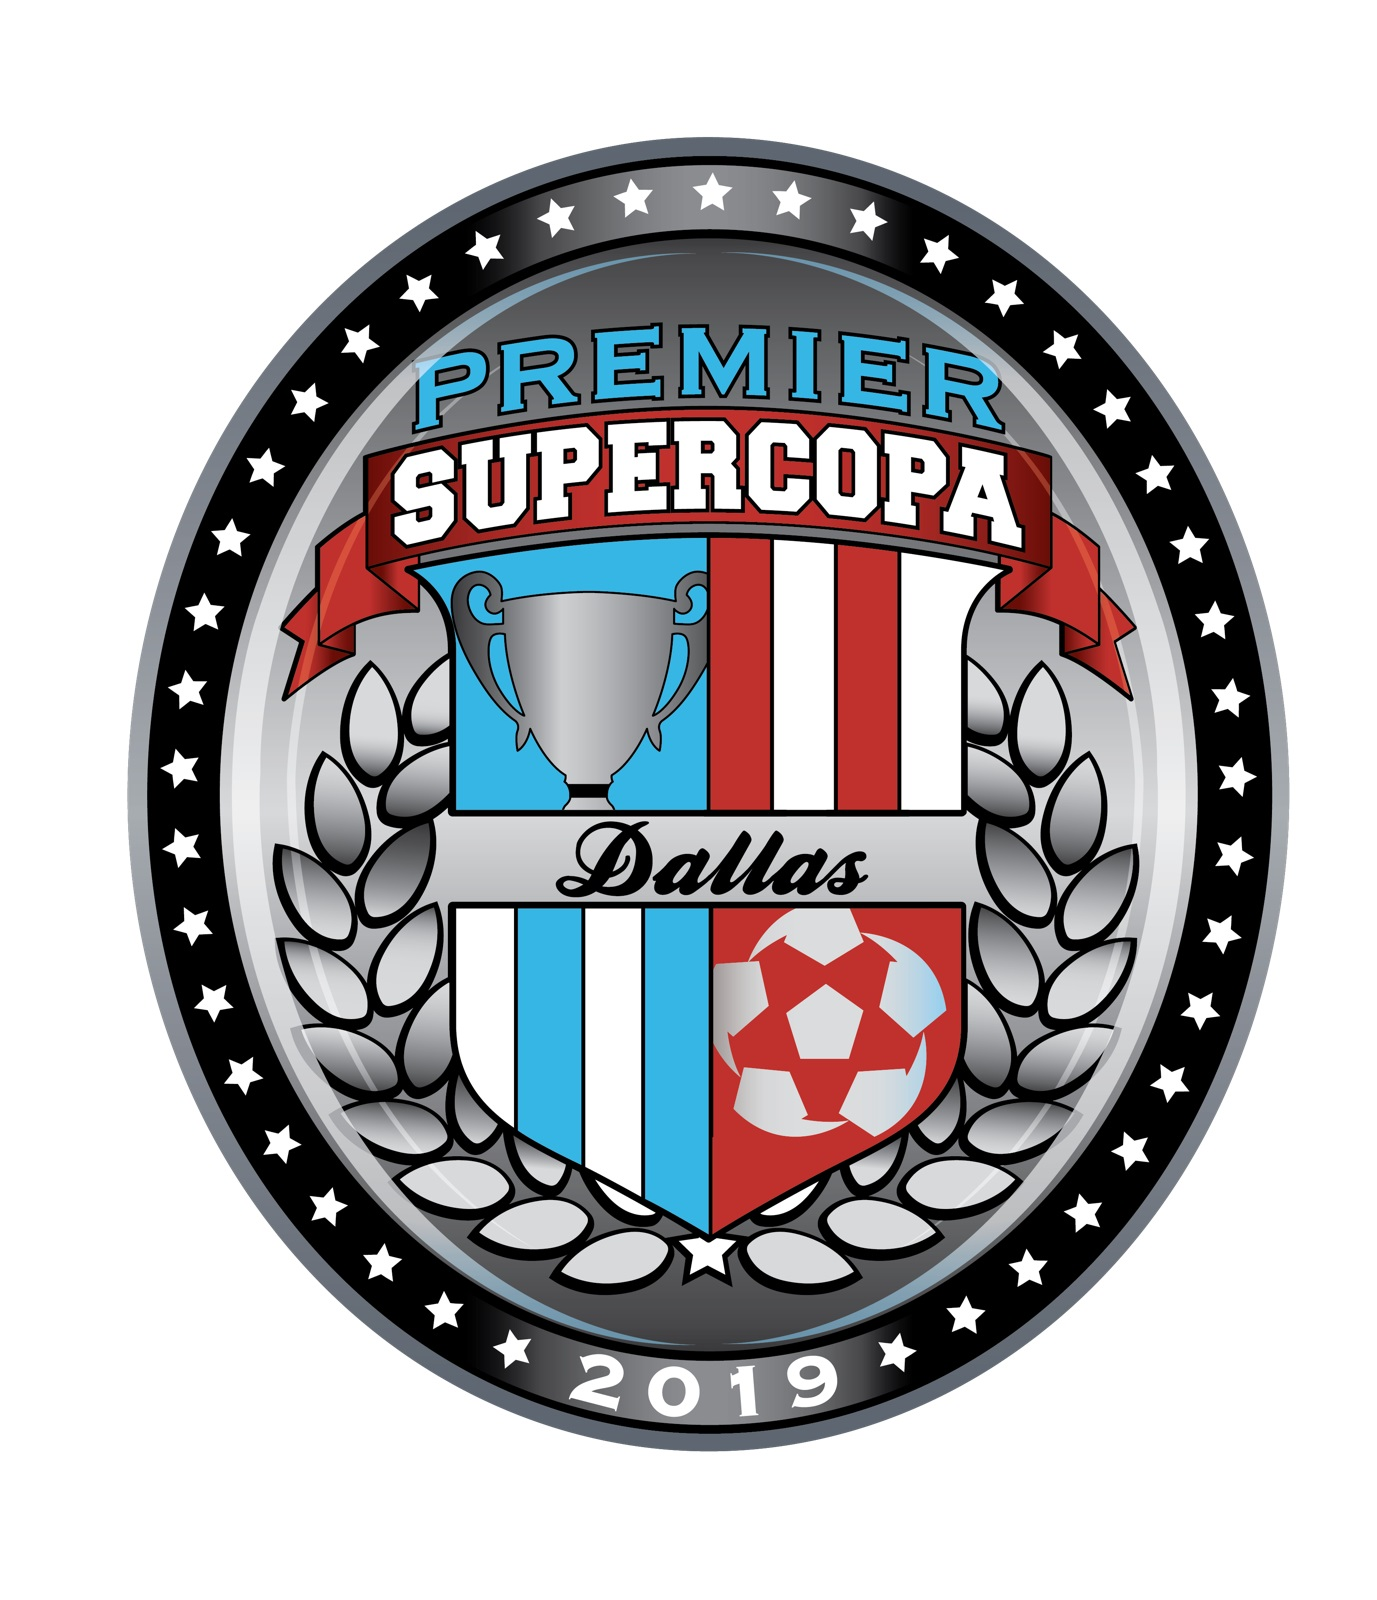 Premier Supercopa 2019 Video Packages - BOOK NOWJune 12-16, 2019Videography Packages1 Game Package: $1952 Game Package: $350 ($175/game)4 Game Package: $620 ($155/game)Game package add-ons (**for 2 or 4 Game packages only):Playoff/final game add-on: $155 eachTournament Highlight Team Video Add-on: $350Individual Player Highlight Video Add-on: $450All games are filmed in high definition from heights of 20-25 feet which is optimal viewing for players, coaches and recruiters. We also offer fast turnaround and unlimited downloads.Our highlight videos will spotlight your player(s) and are the perfect keepsake to share with family and friends. Each dynamic video is 3-5 minutes long.*Games must be booked in advance of tournament to guarantee availability